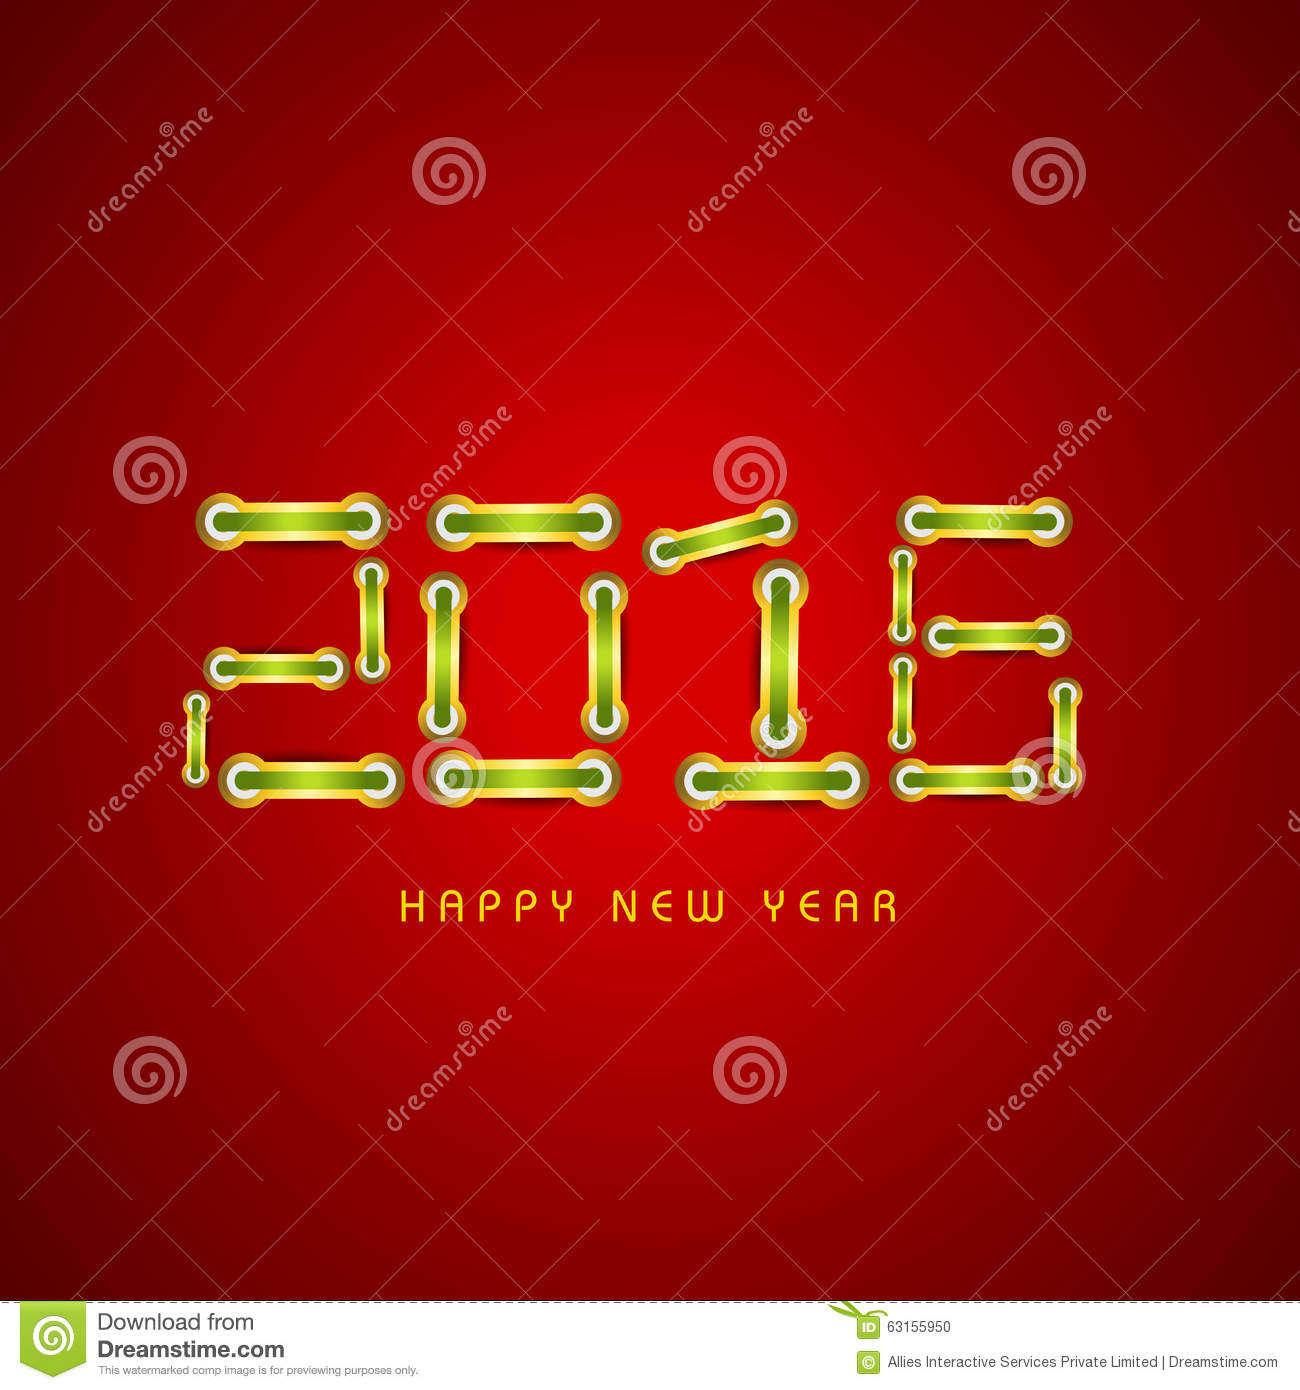 Glossy stylish text for Happy New Year 2016.